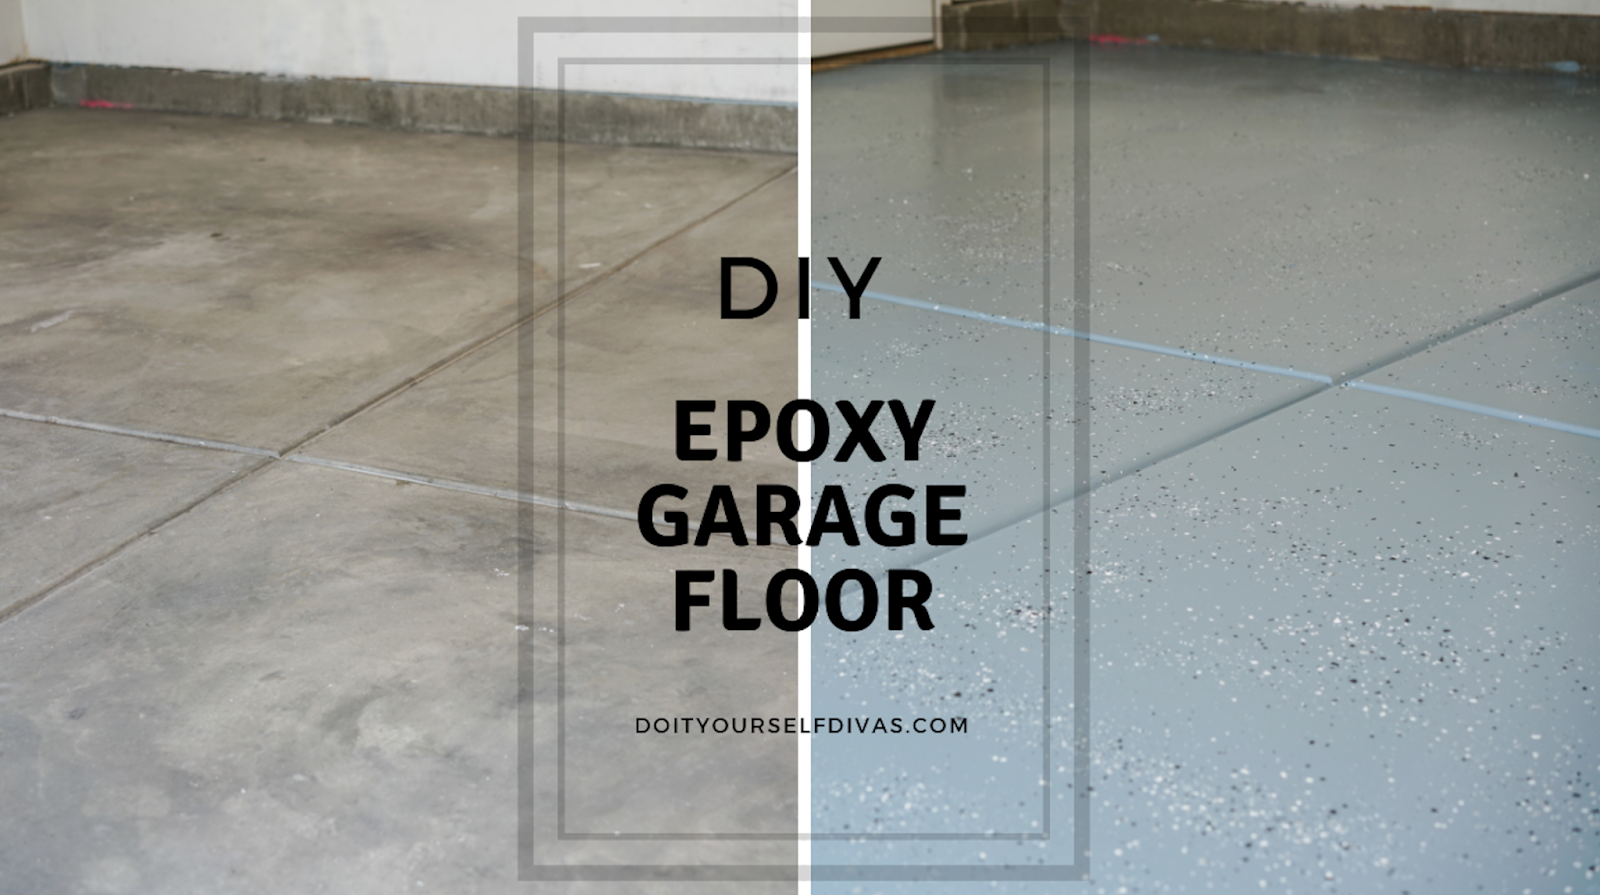 Diy Epoxy Shield Garage Floor